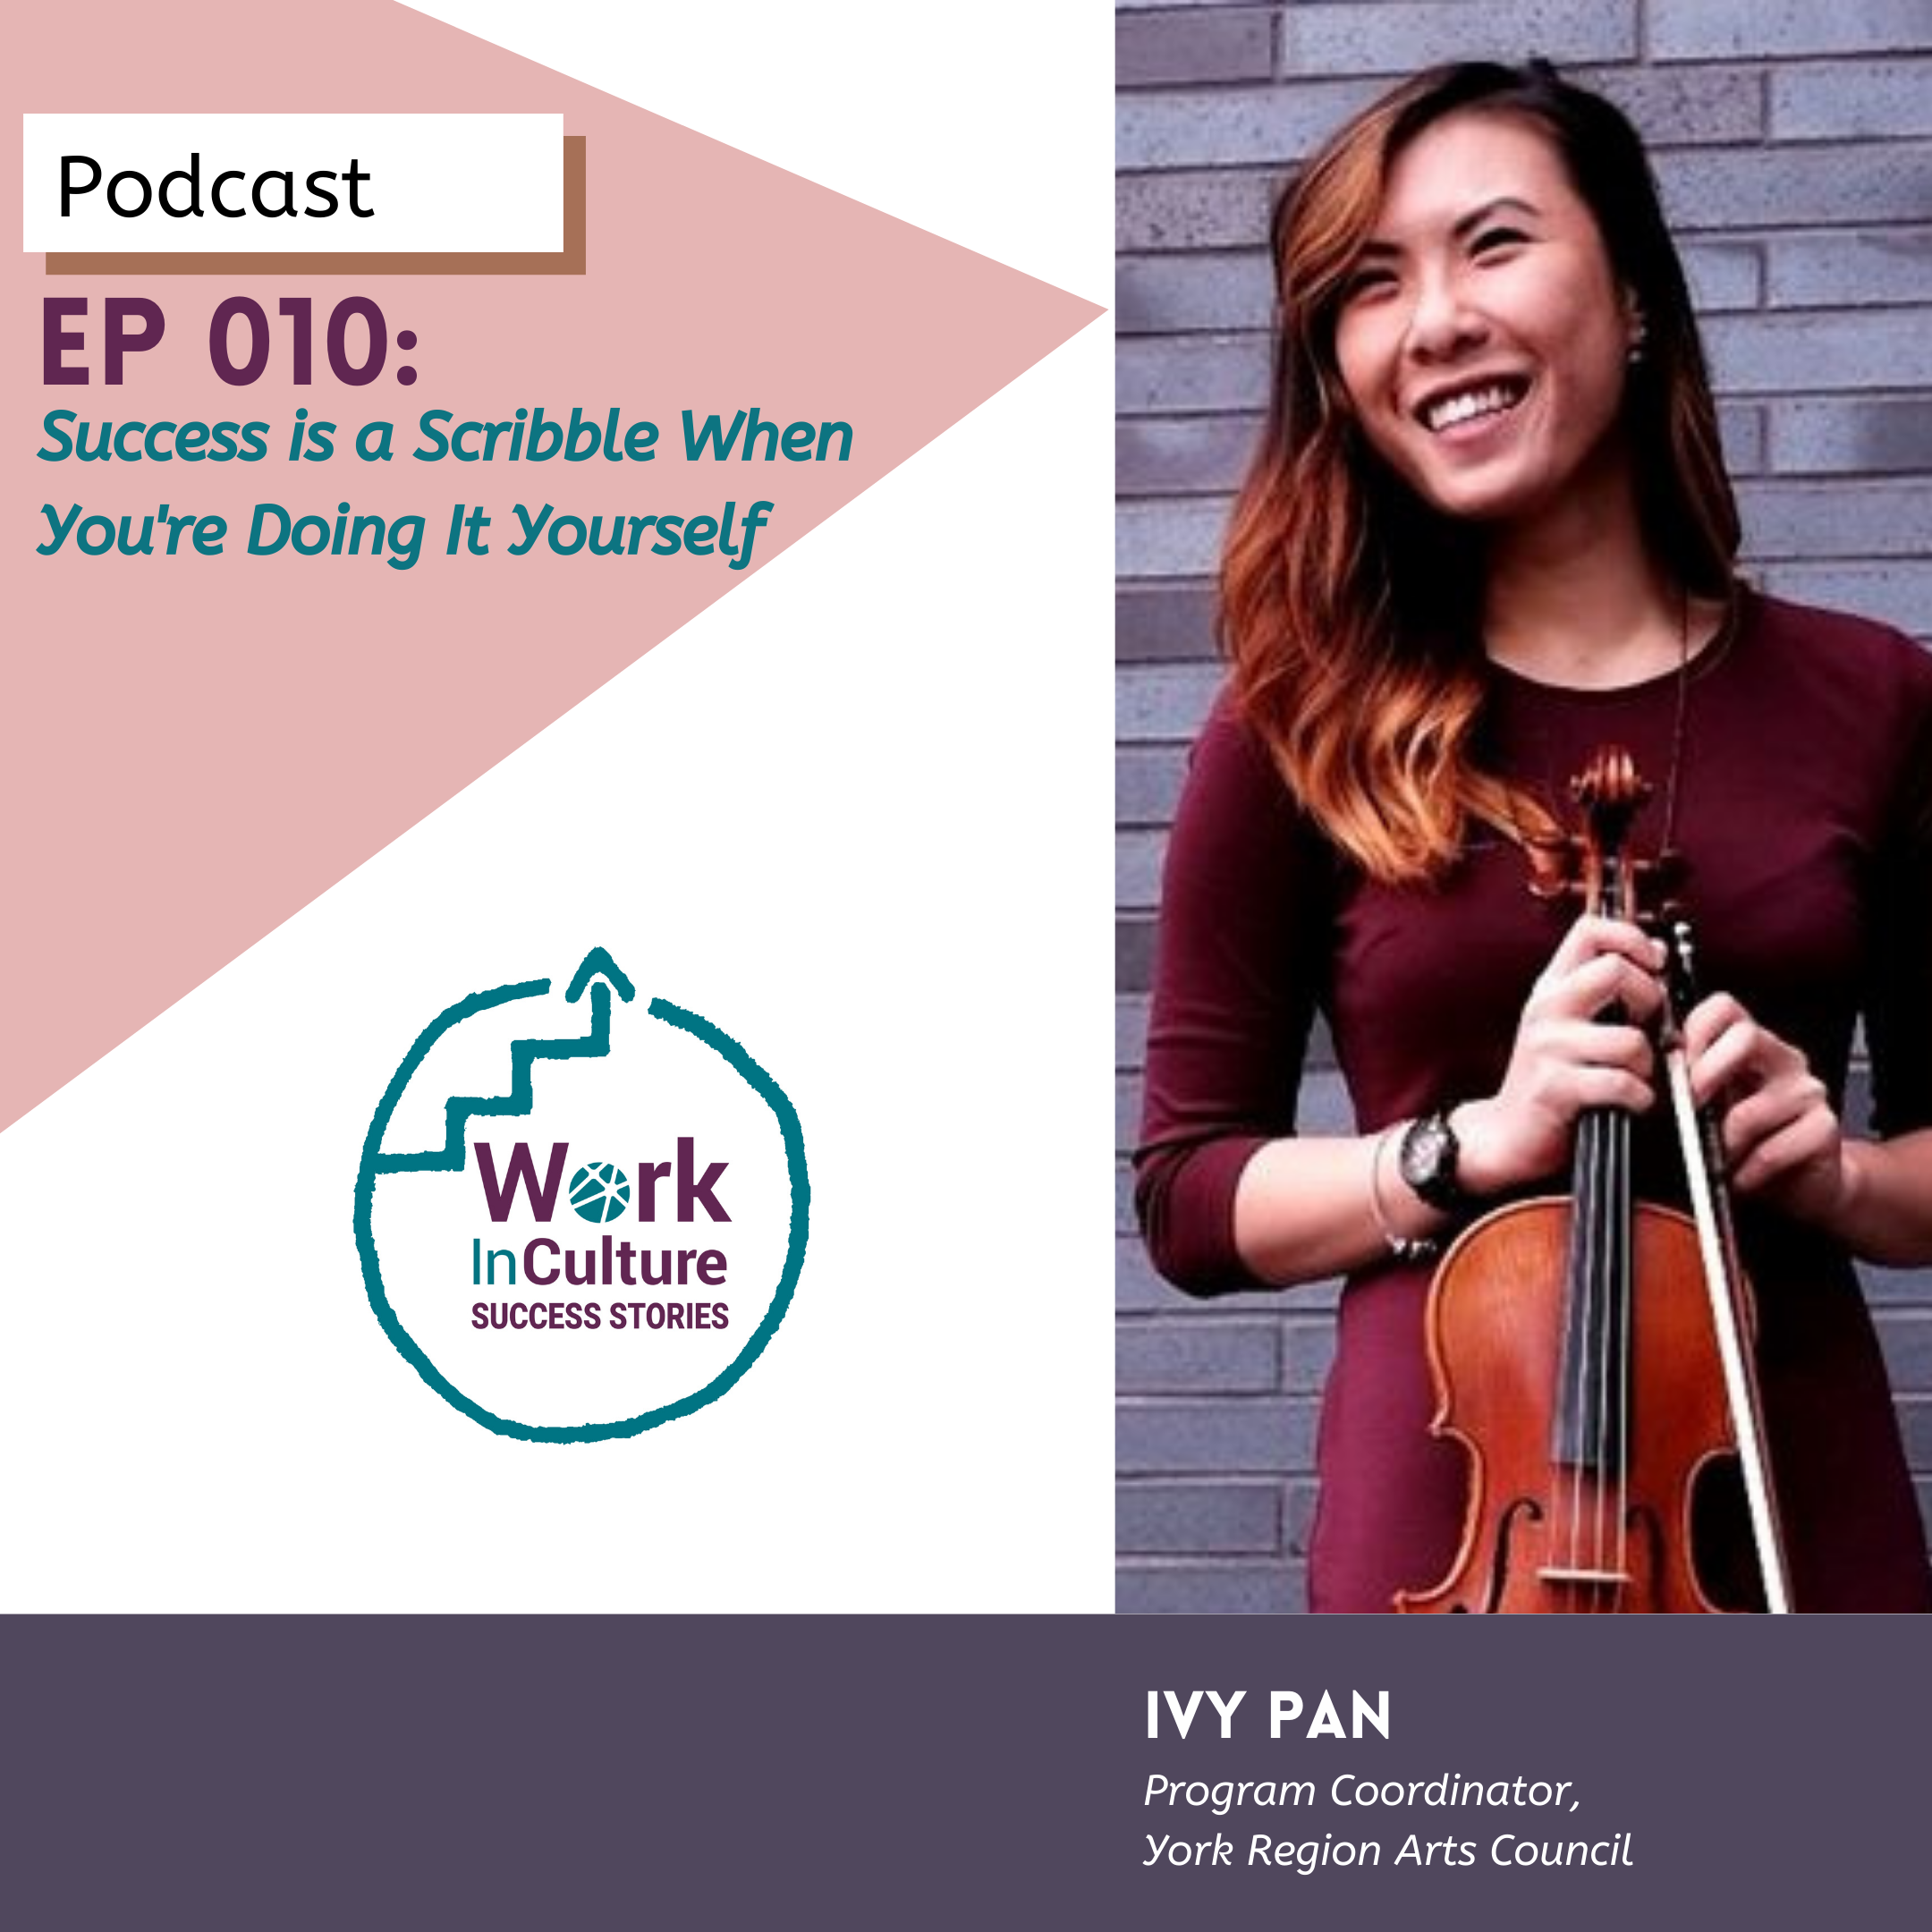 Ivy Pan, podcast guest